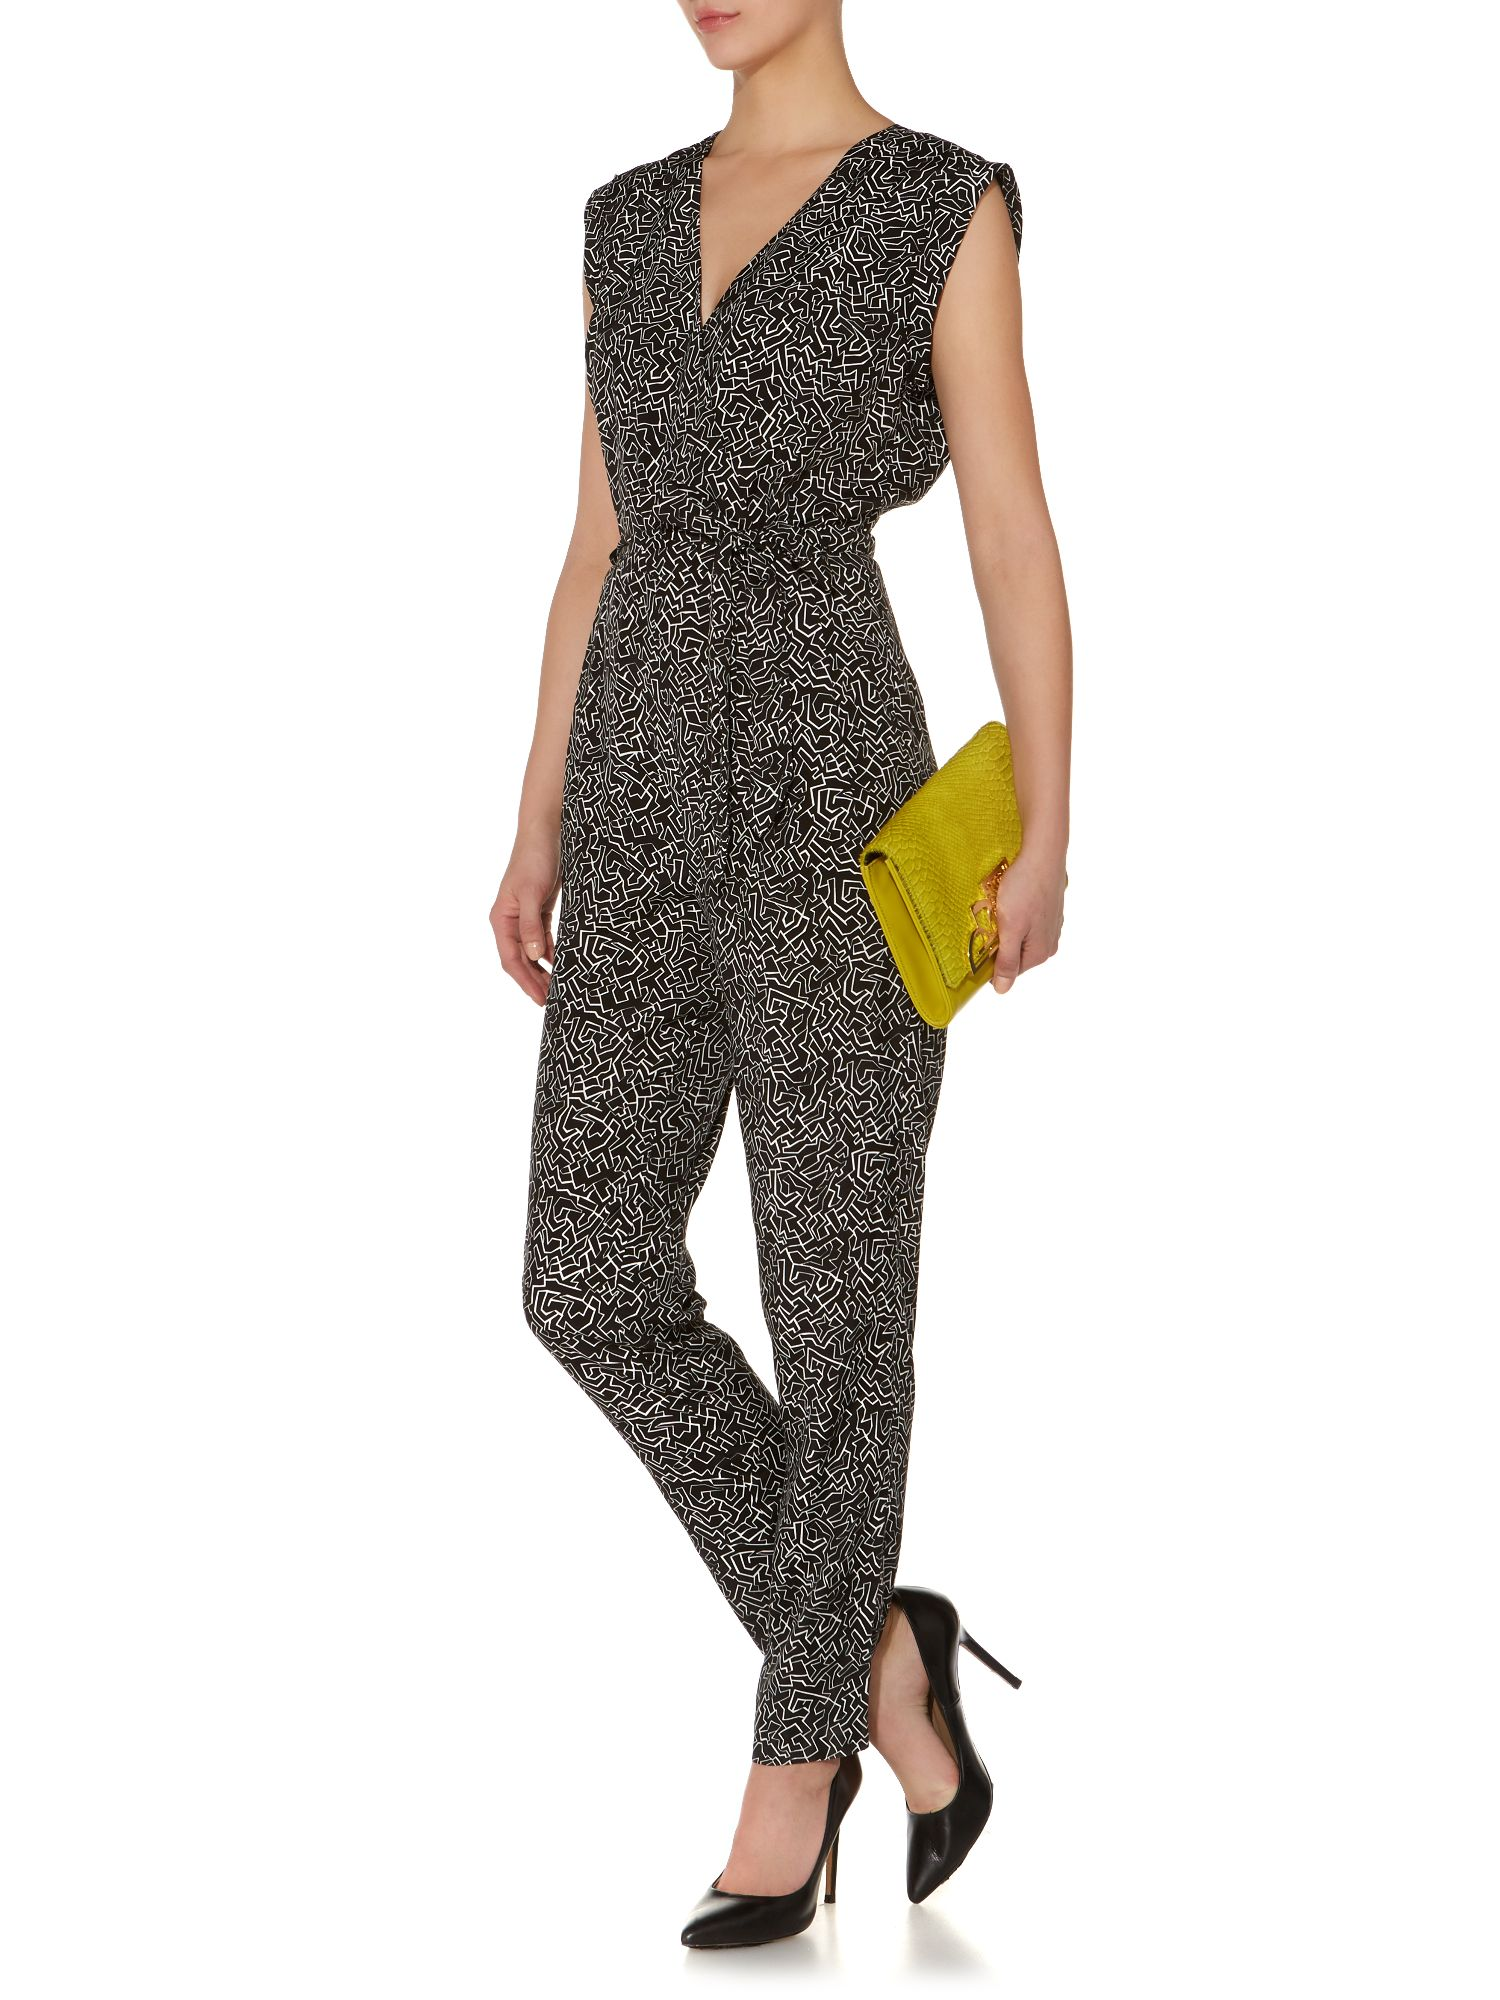 Monochrome printed jumpsuit